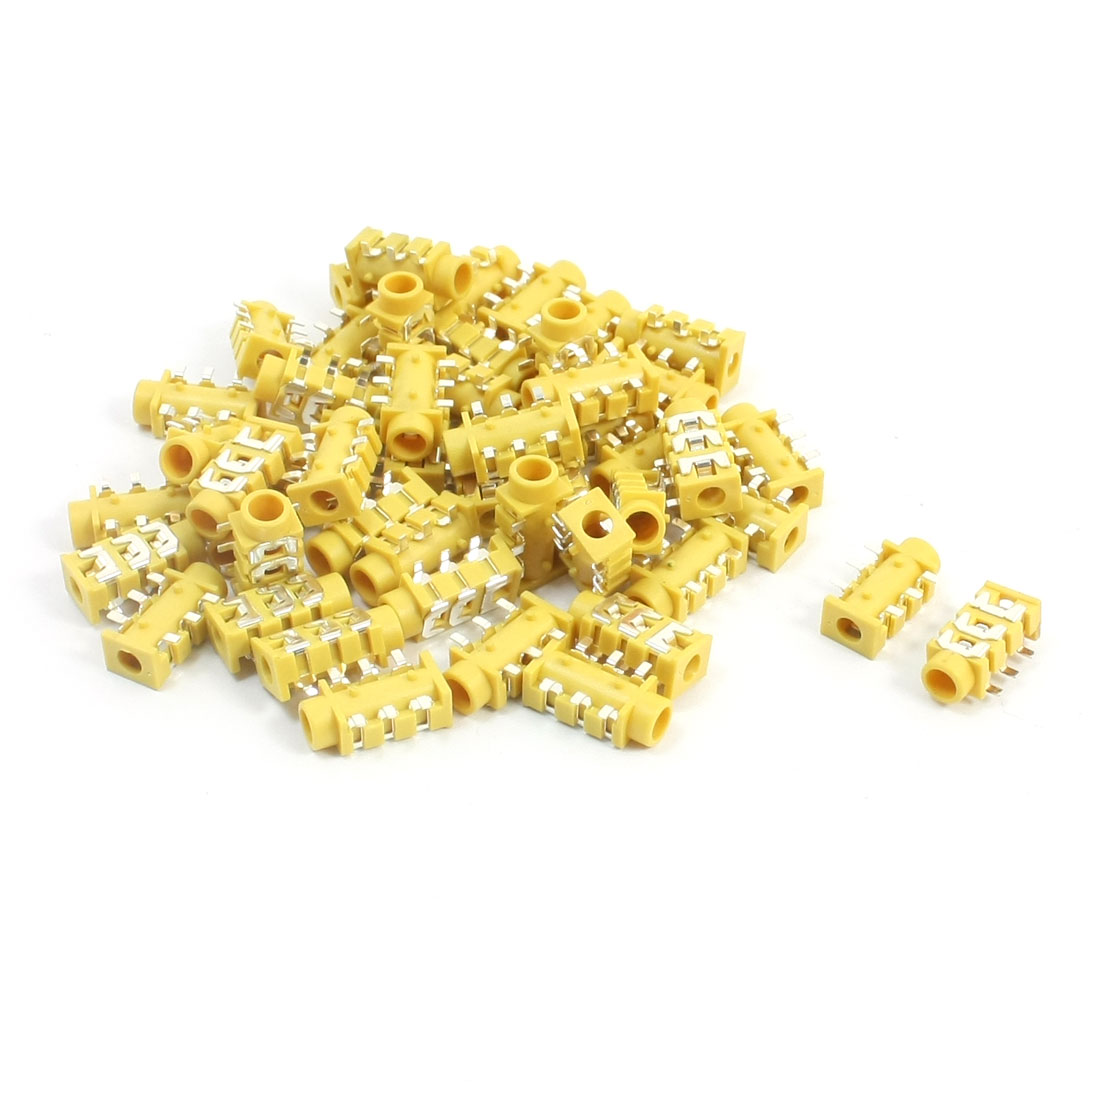 50Pcs 6 Soldering Pins 3.5mm SMD Stereo Jack PCB Mount Female Connector Socket Yellow for Earphone Headphone